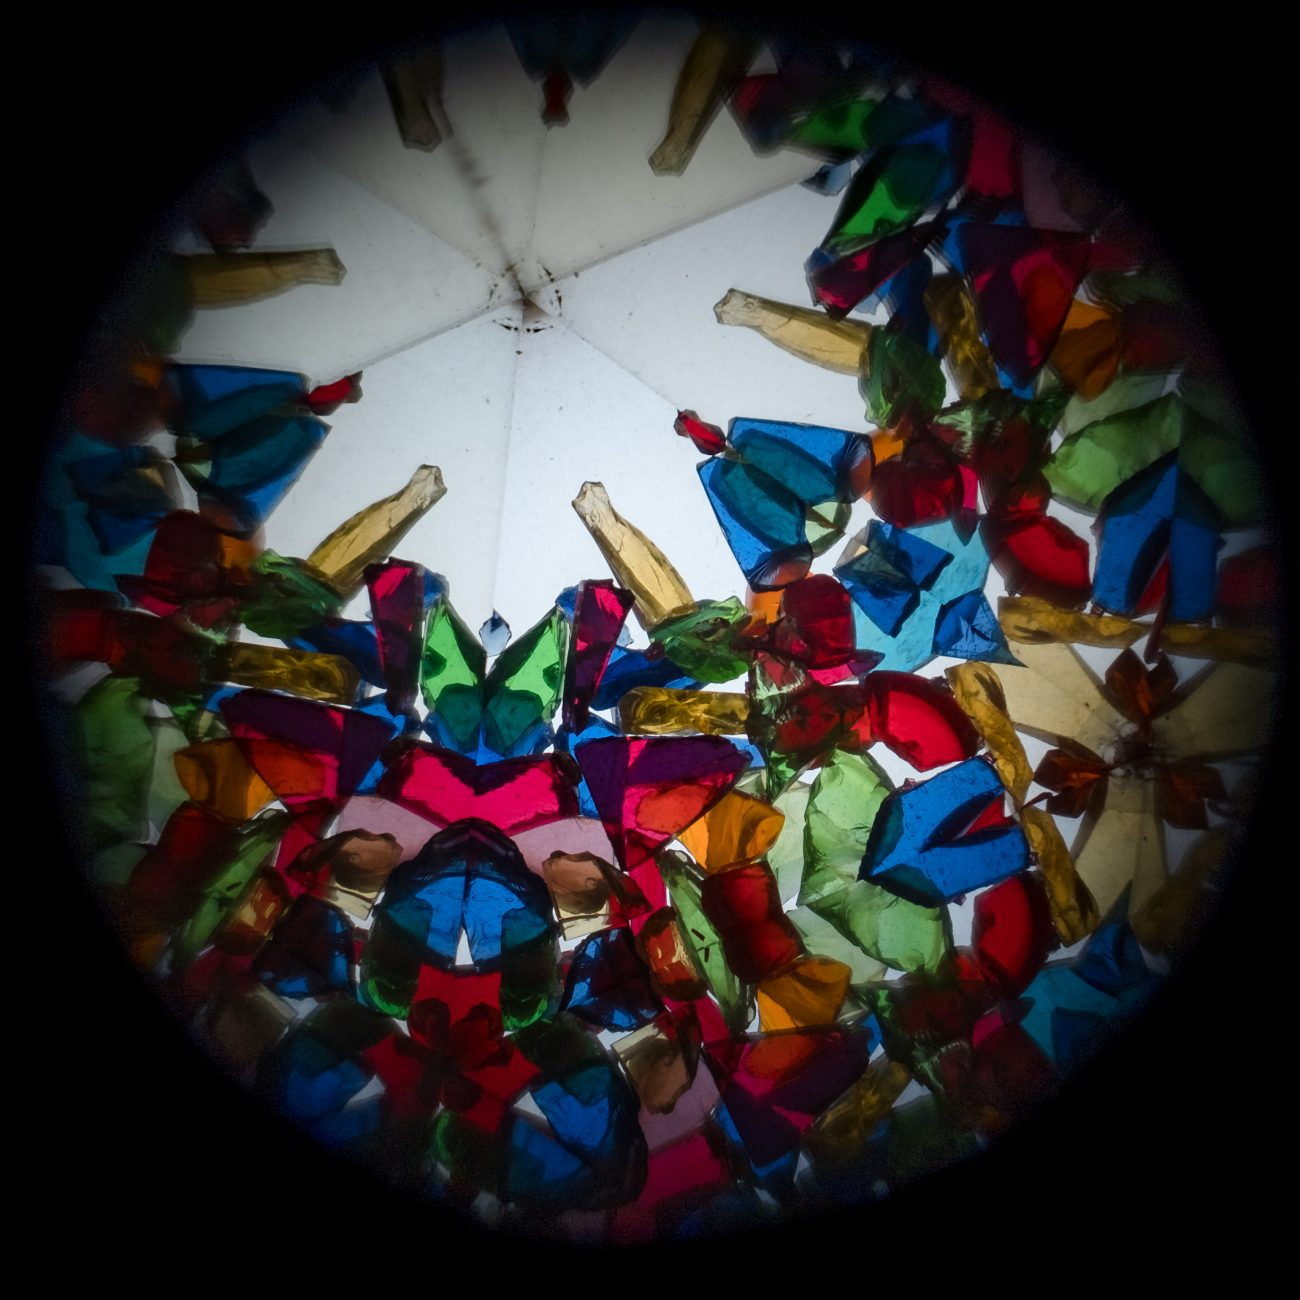 View through a Kaleidoscope eyepiece showing colored glass shards